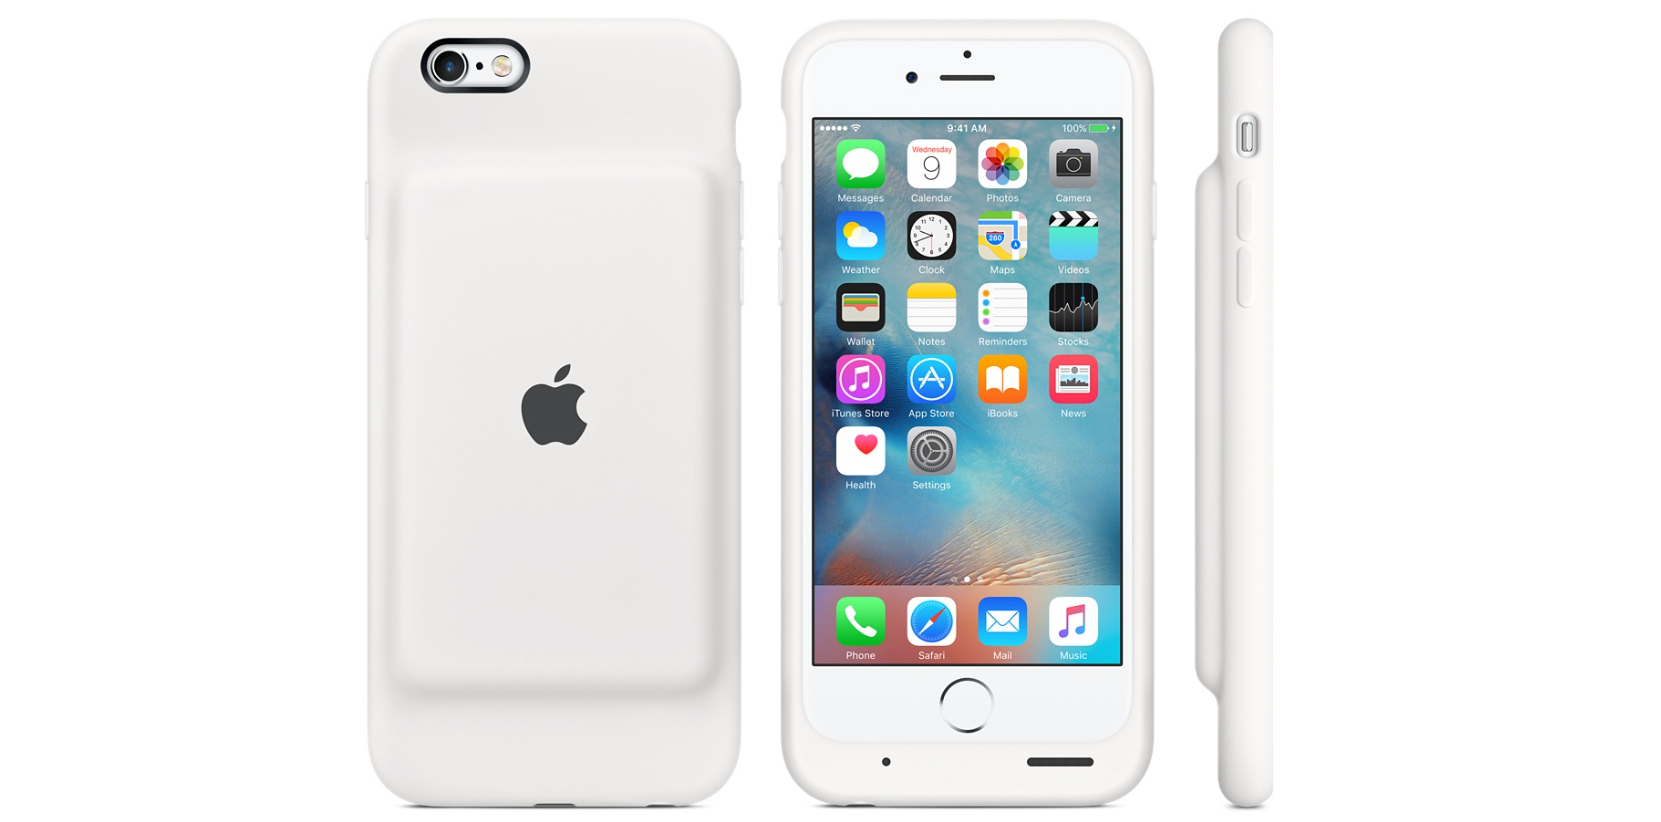 There's probably a good reason why Apple's new iPhone 6s battery case is so ugly